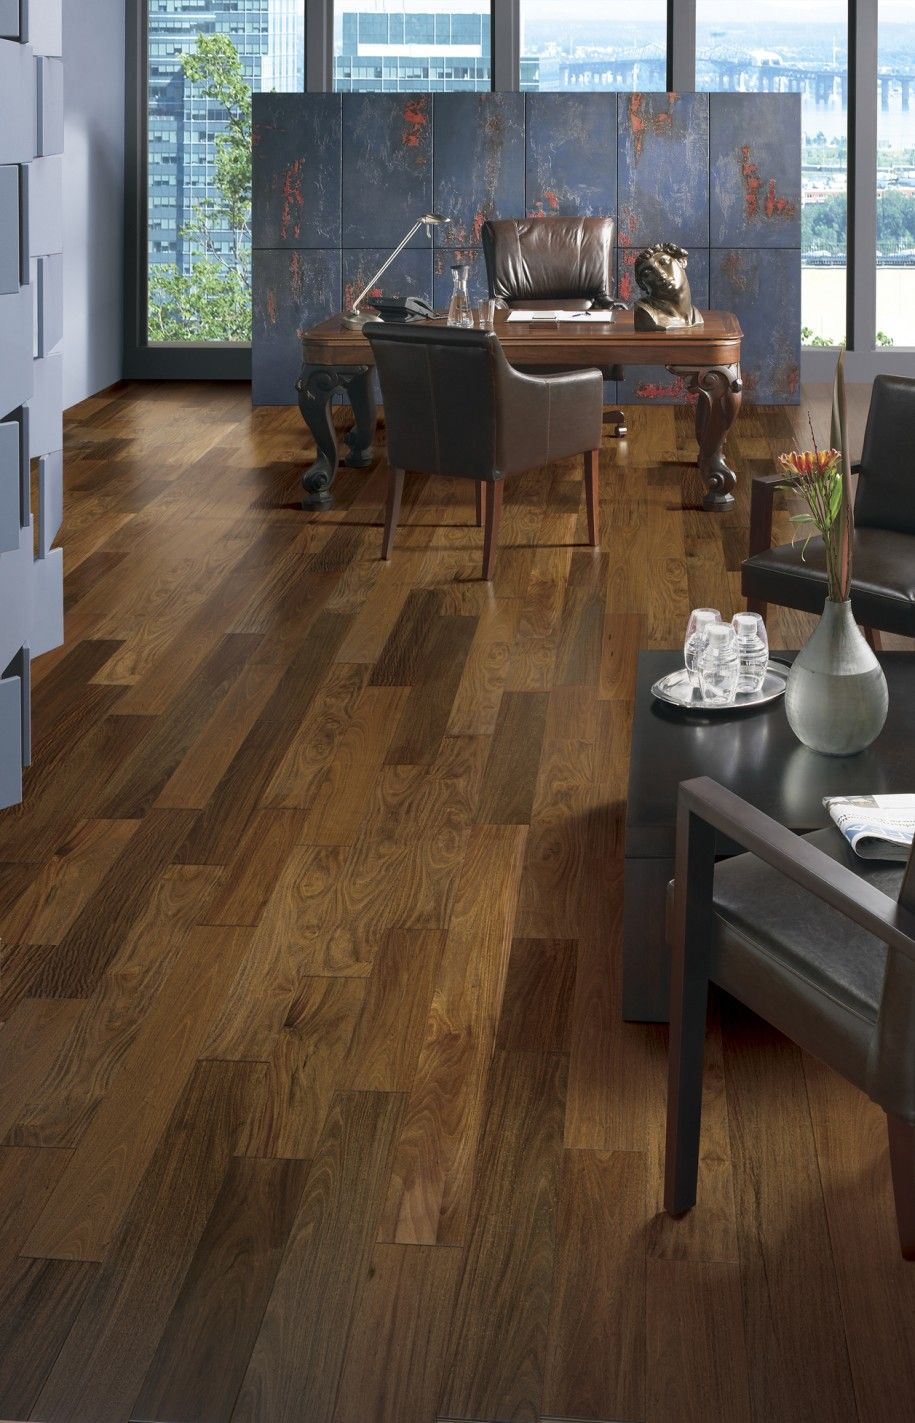 Mesmerizing Different Types Of Wood Floors Outstanding